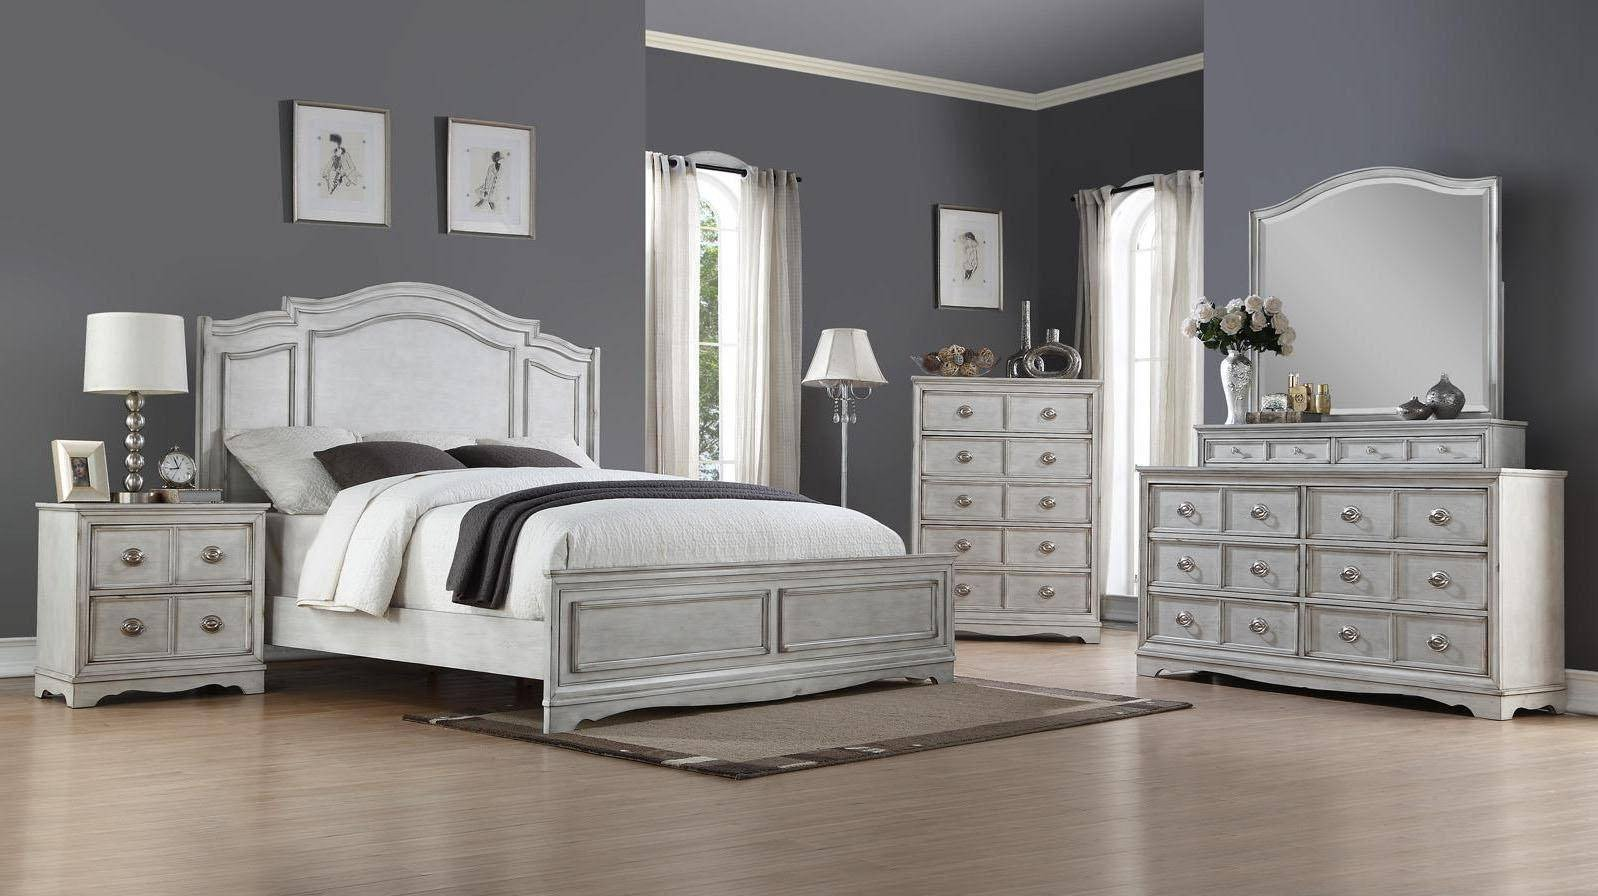 Rustic White Bedroom Set Luxury Bernards Furniture toulon Antique White 1616 105 Queen